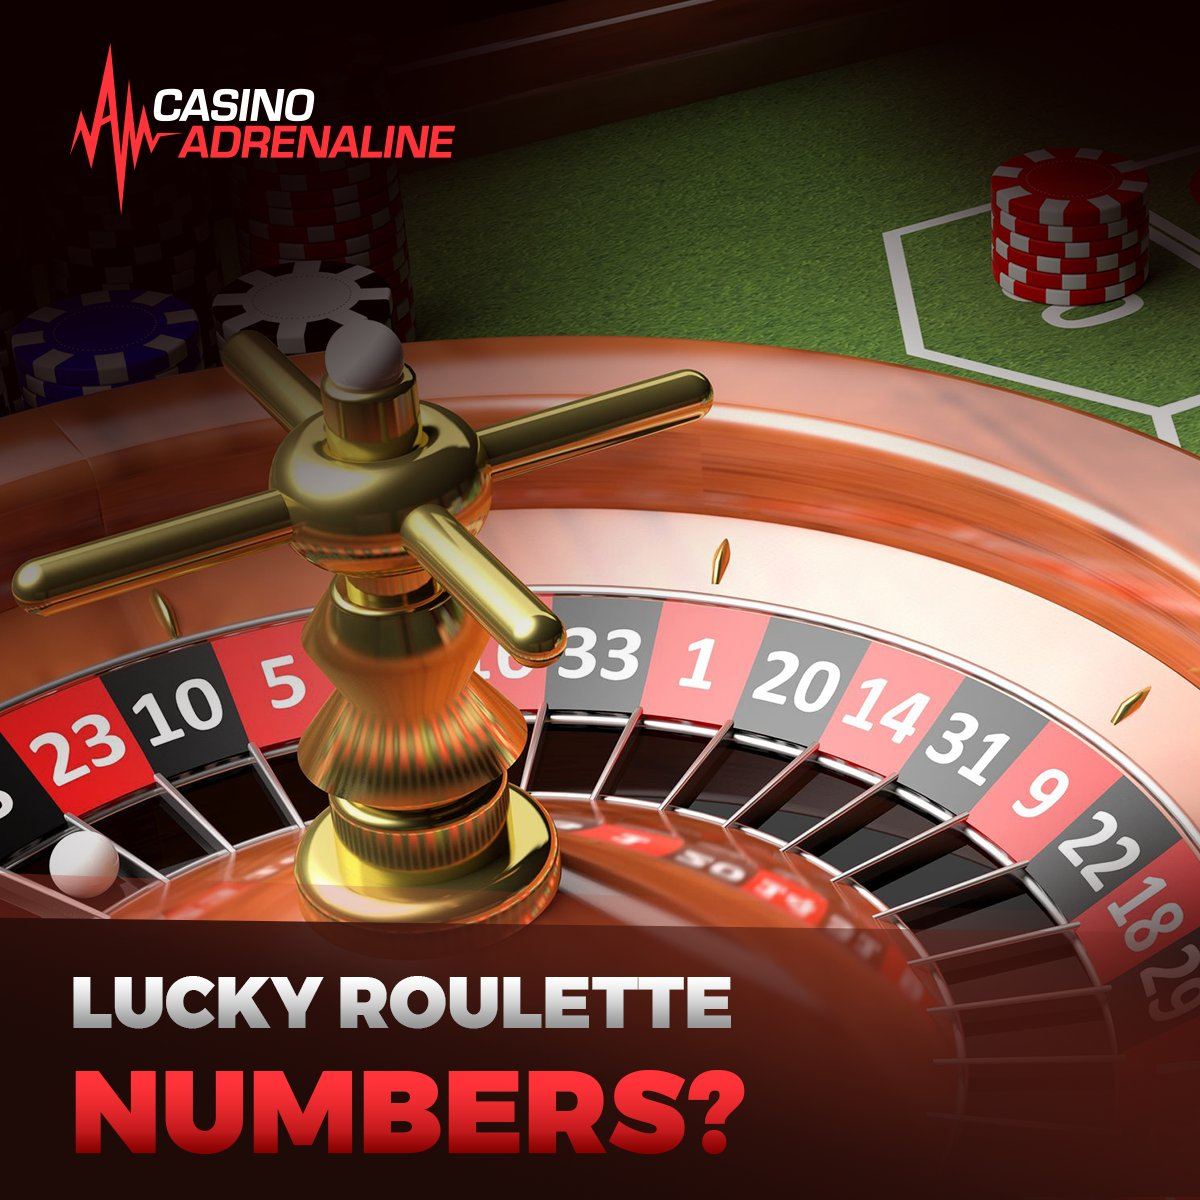 test Twitter Media - What is your lucky Roulette number? 😁🤔 #CasinoAdrenaline #roulette https://t.co/CcJVMwWYCE